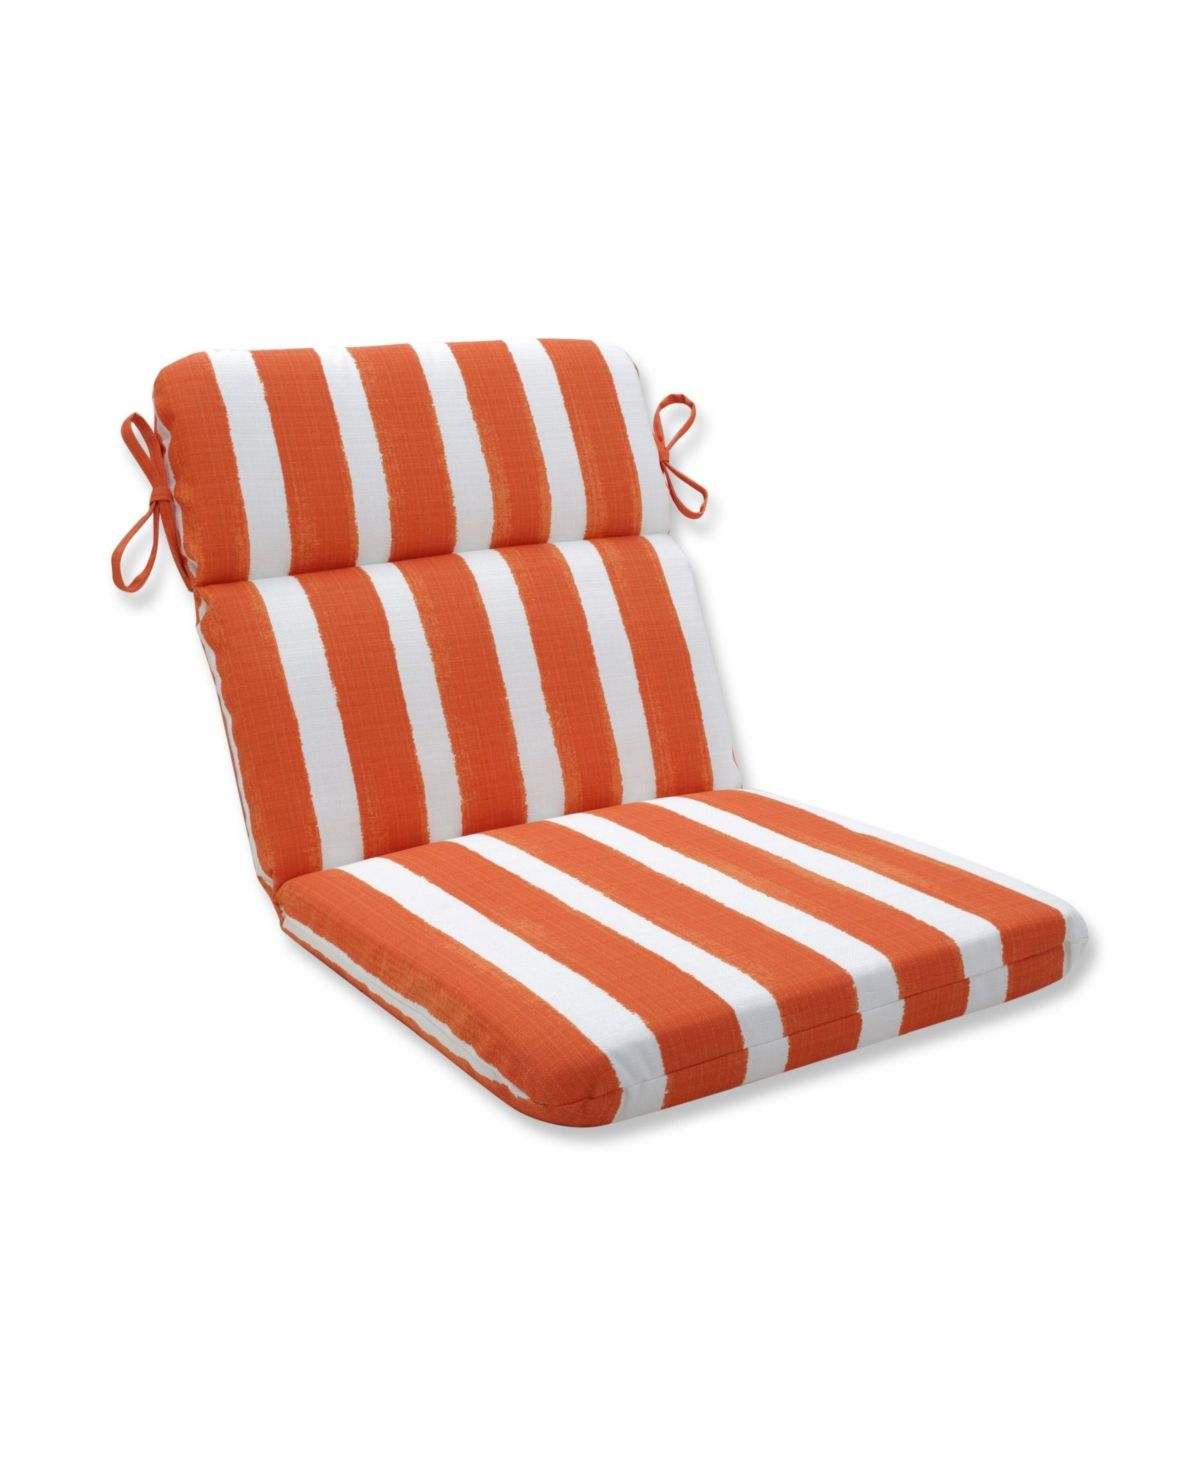 Pin On Products Orange outdoor chair cushions